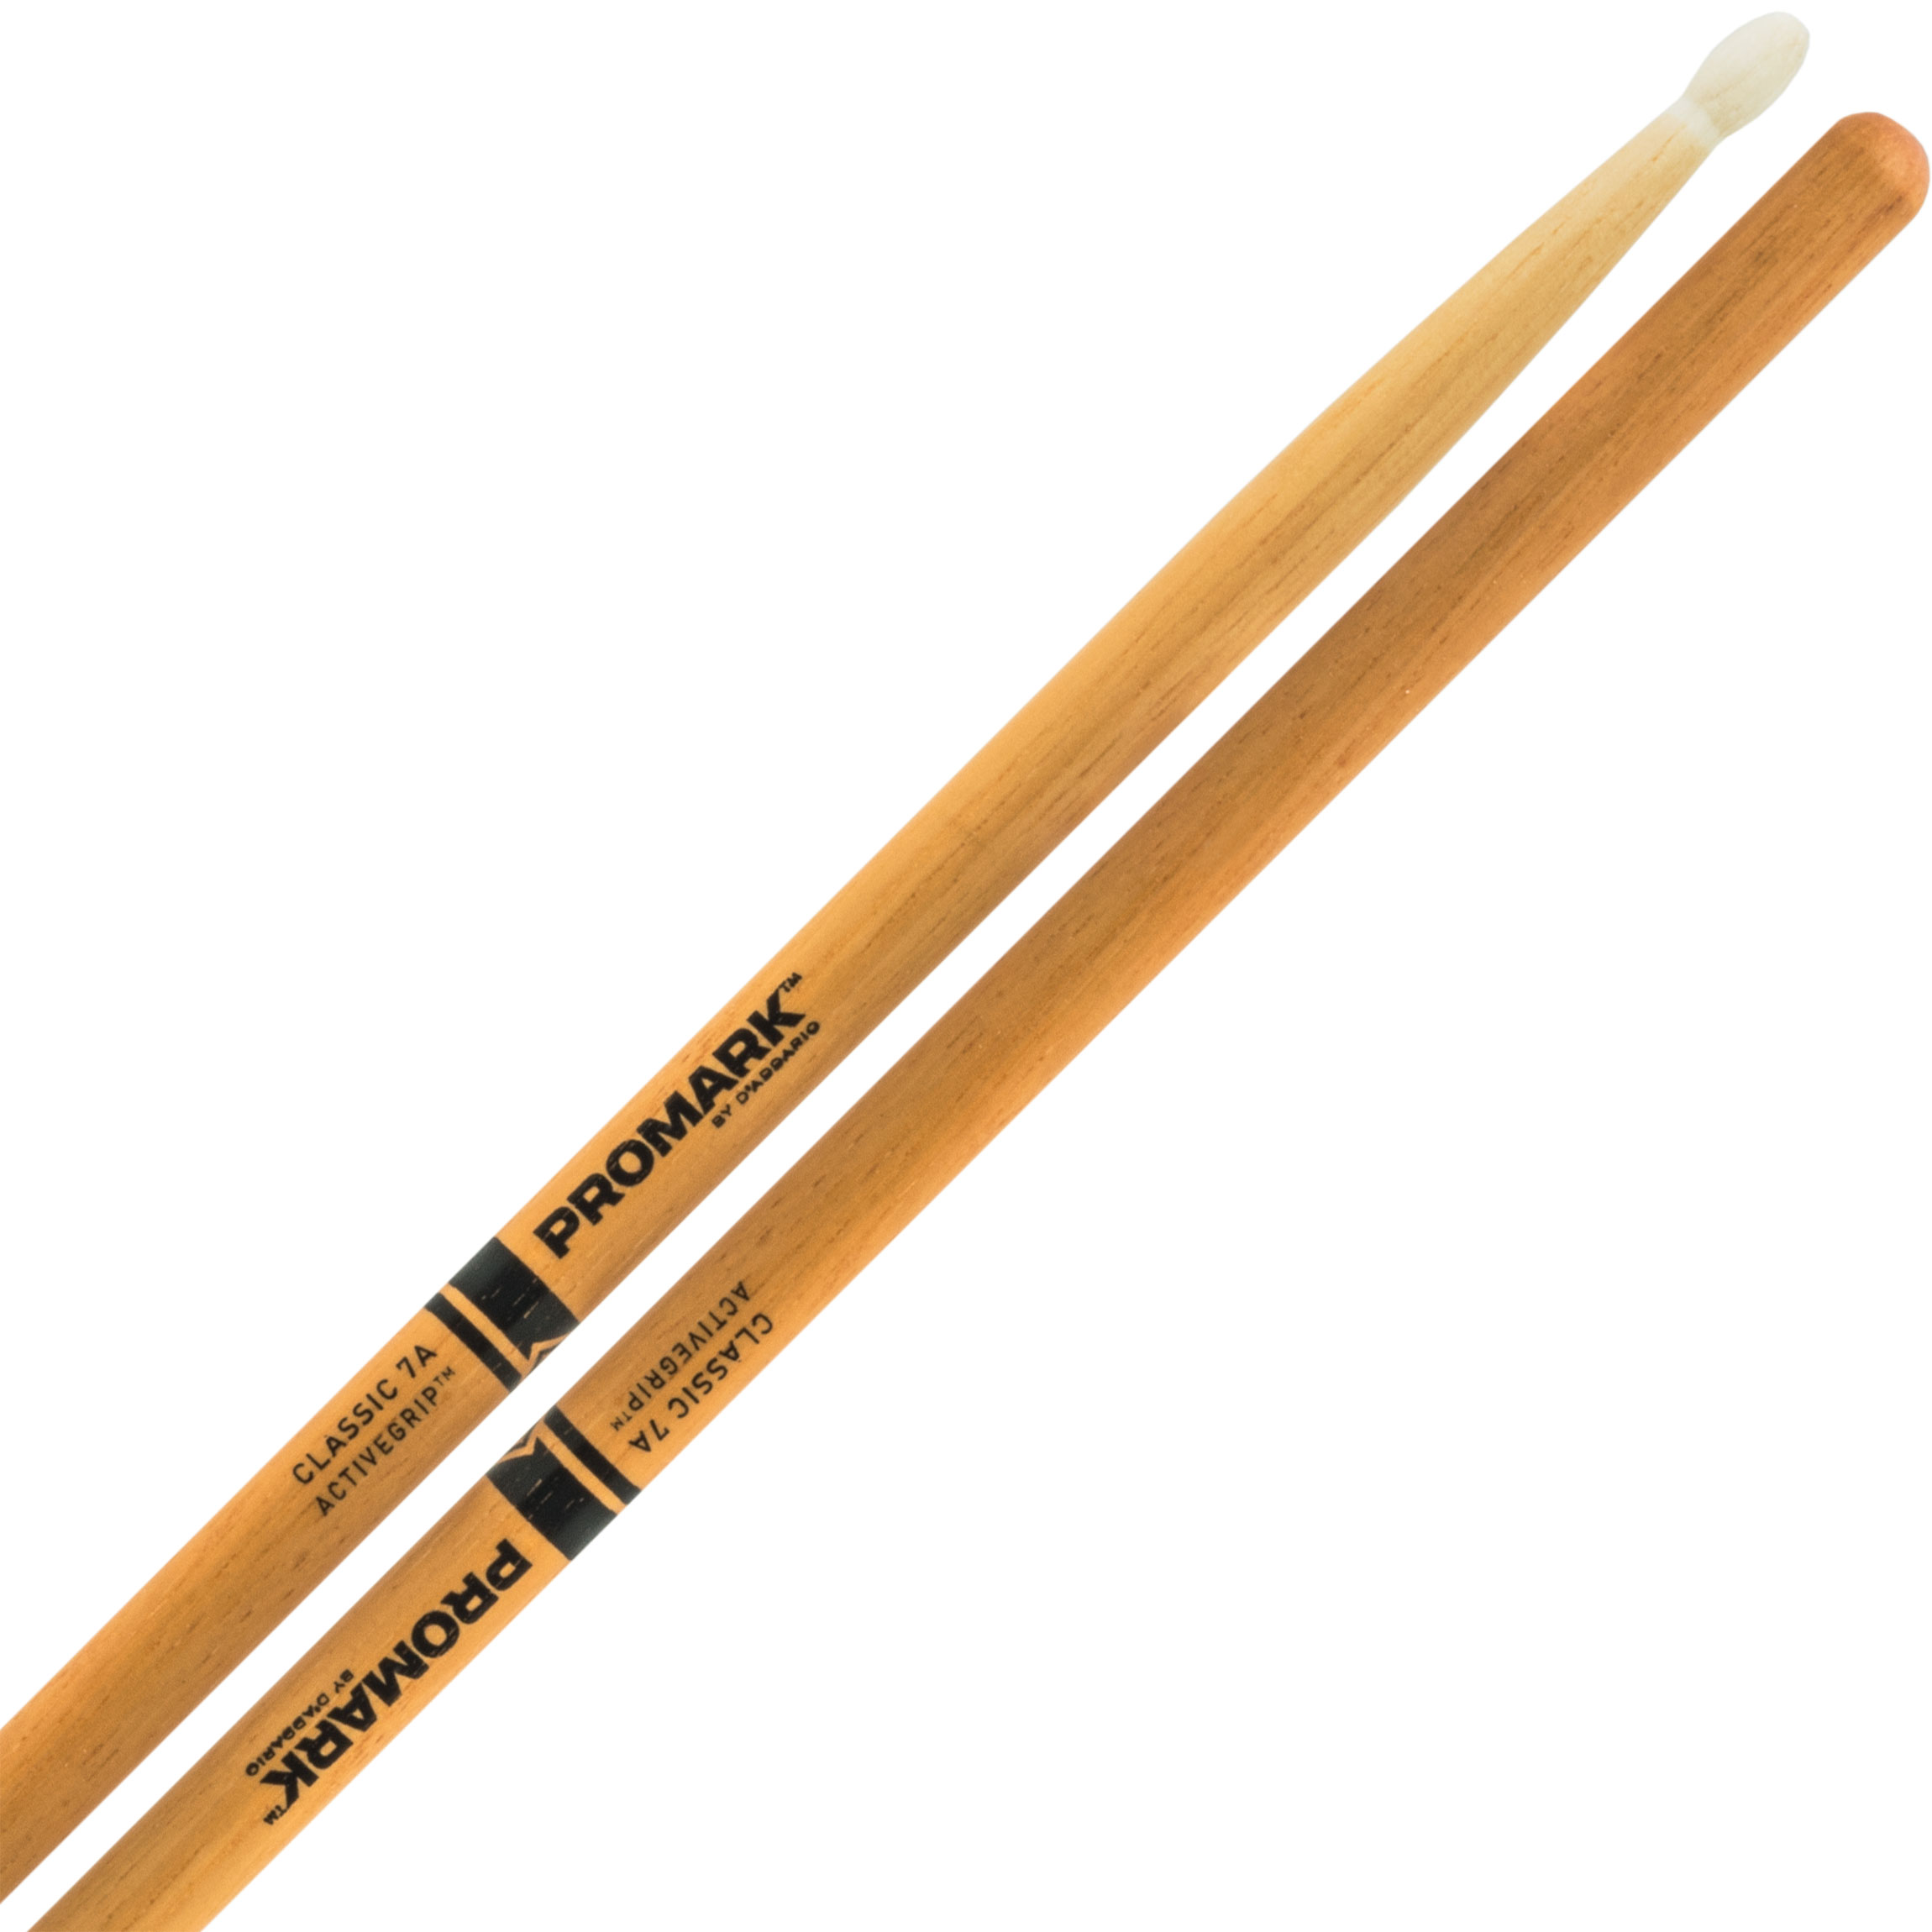 Promark Classic 7A ActiveGrip Clear Hickory Drum Sticks